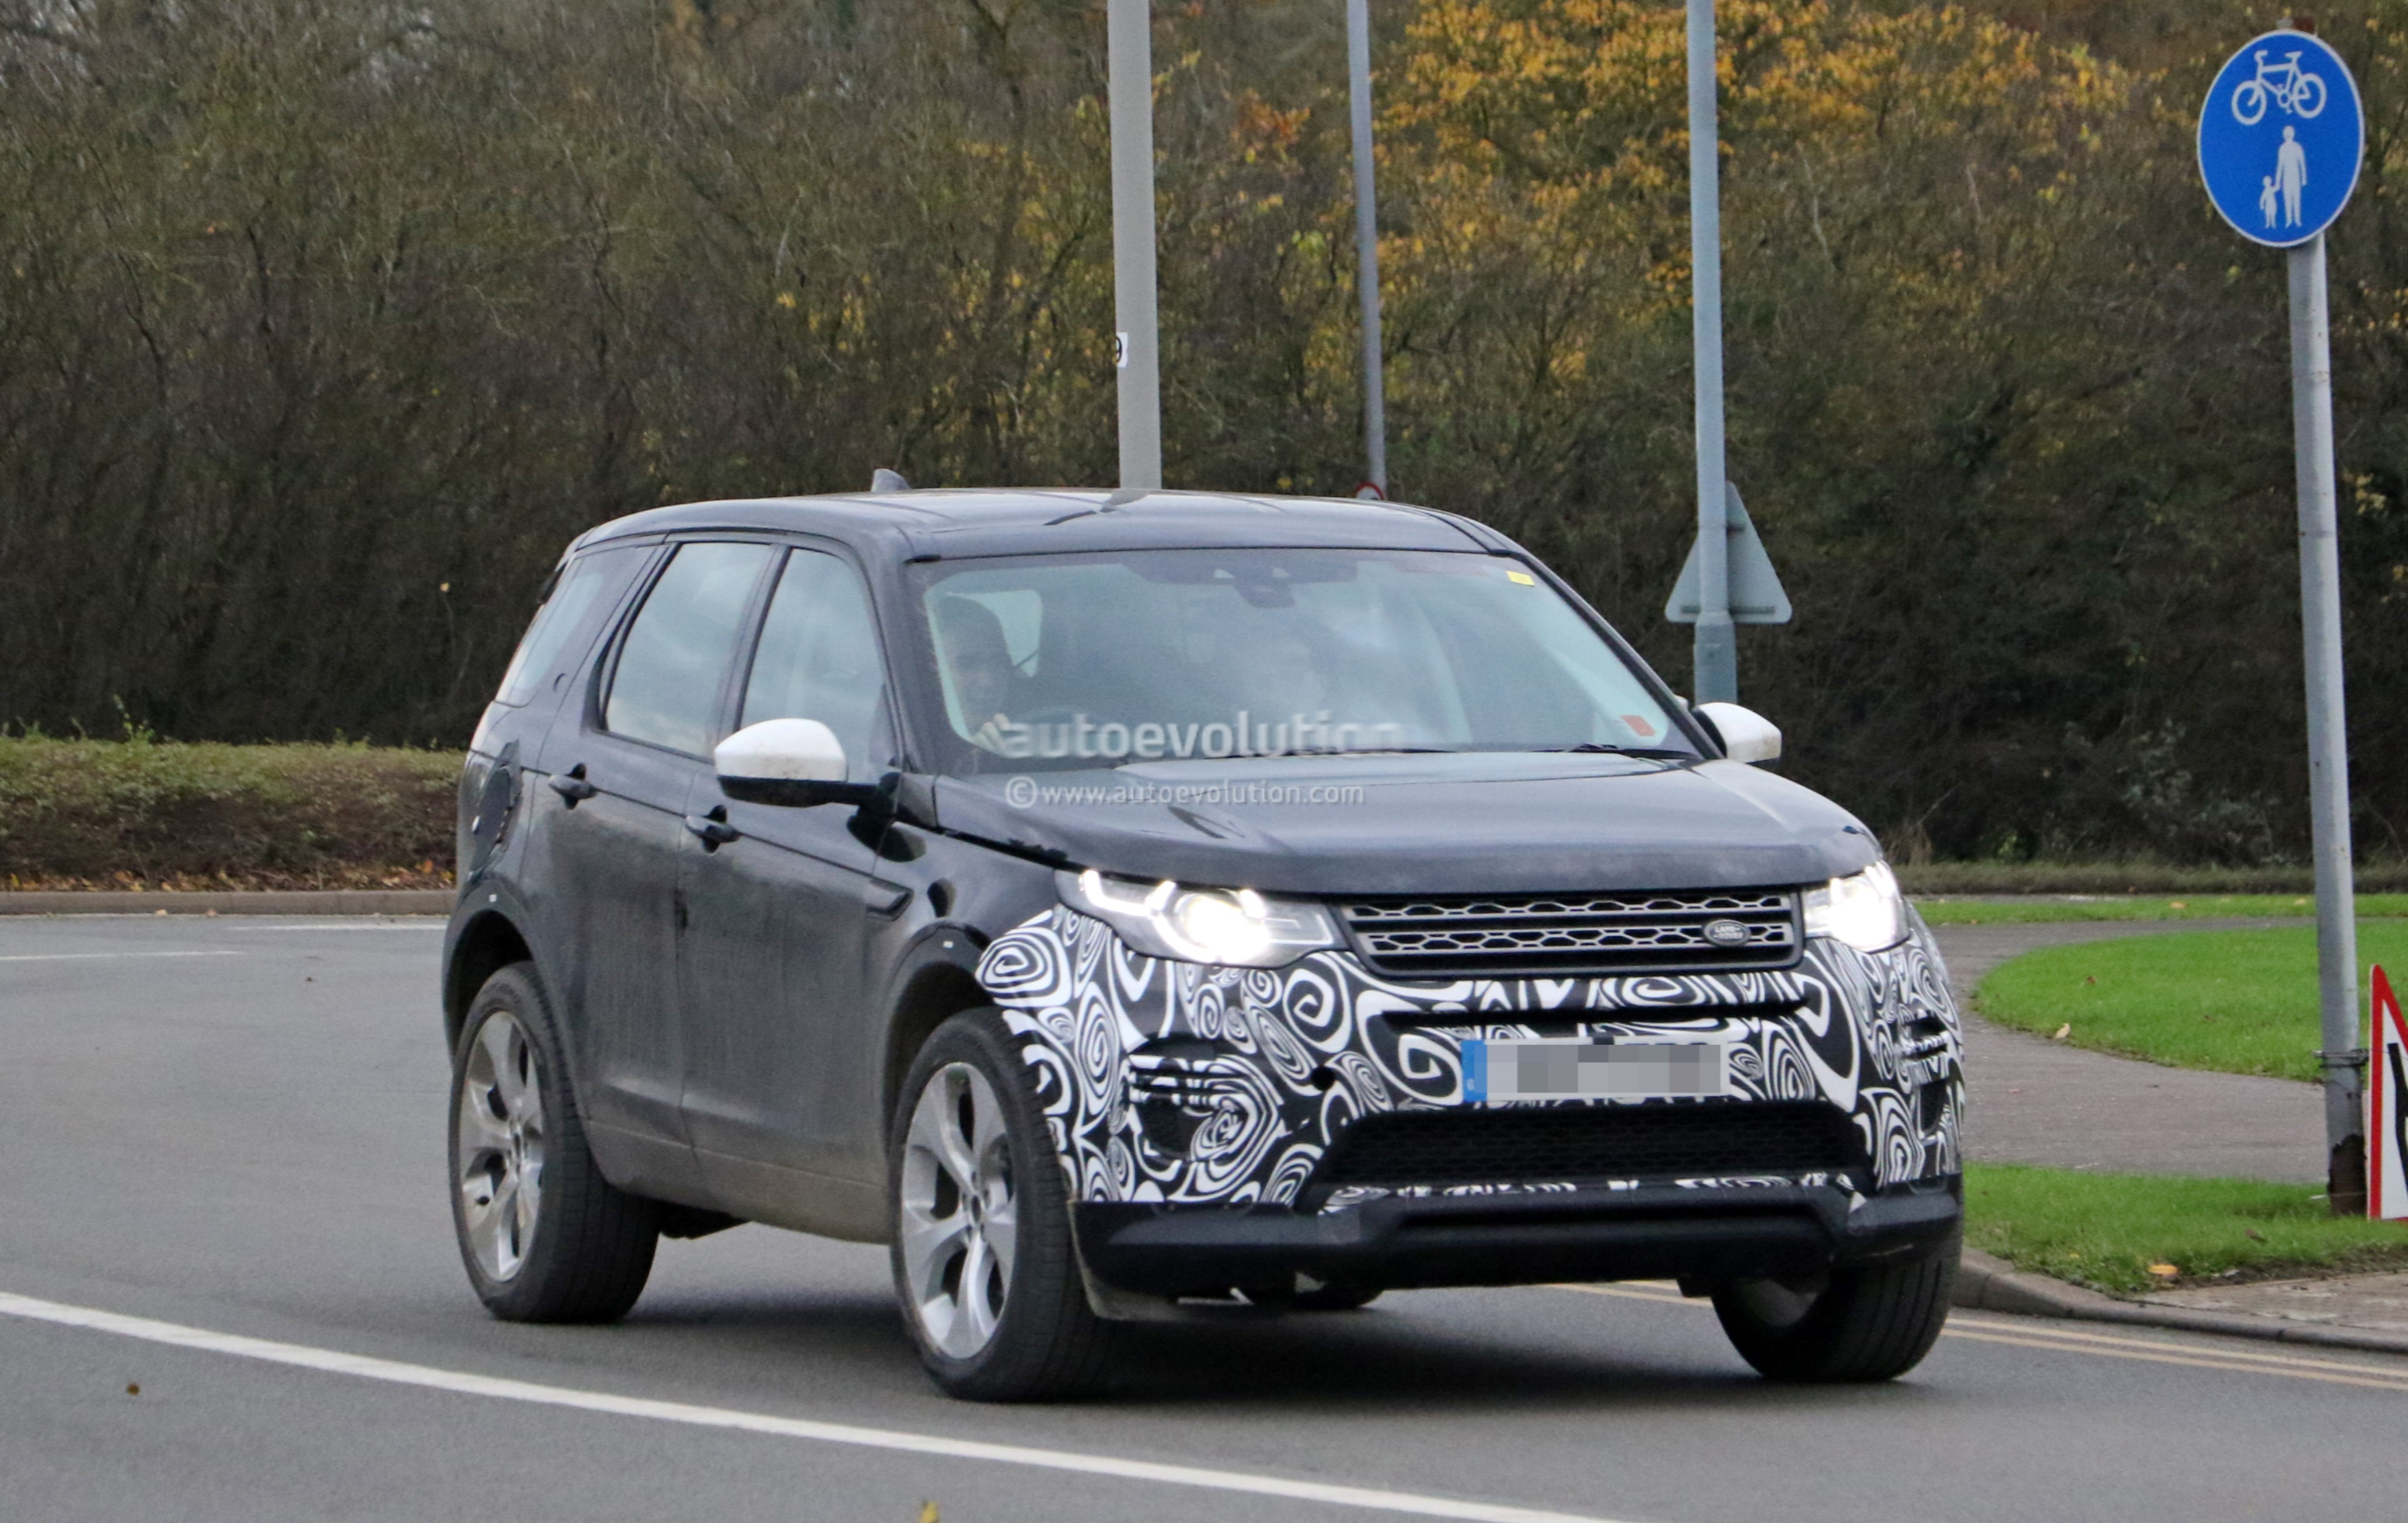 Spyshots 2019 Land Rover Discovery Sport Has Makeshift Fuel